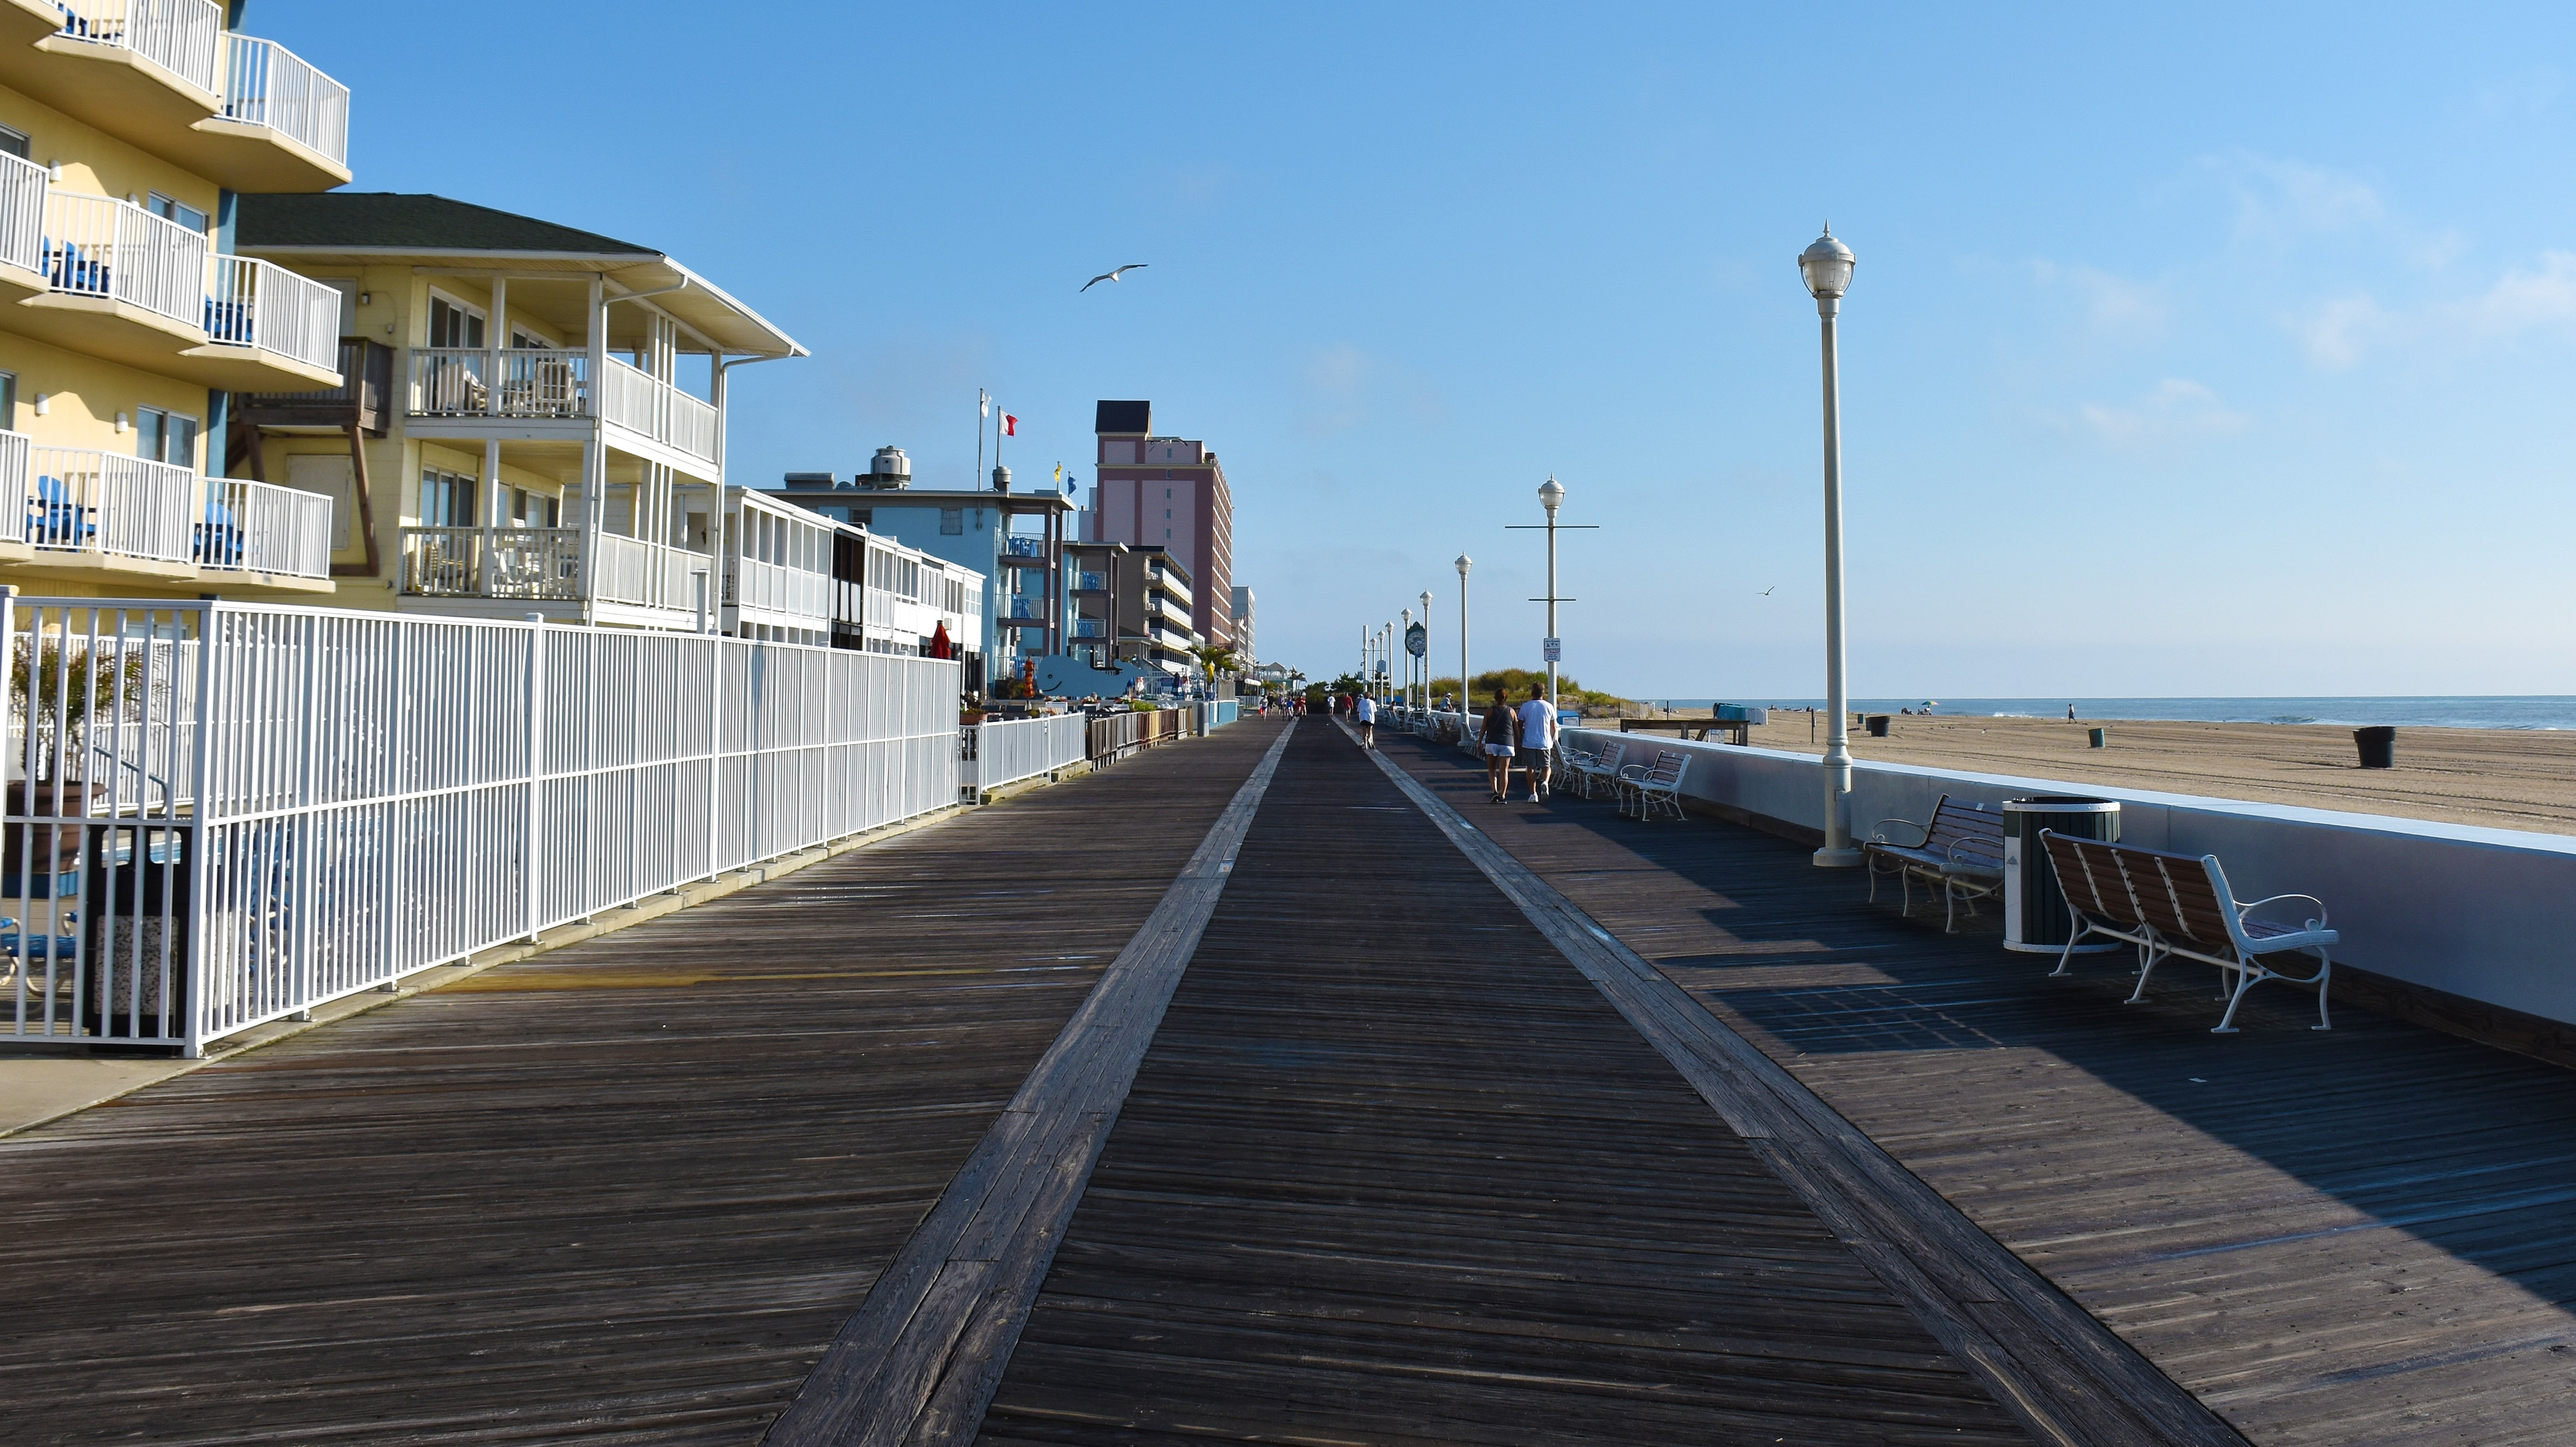 view of hotels and beach from boardwalk